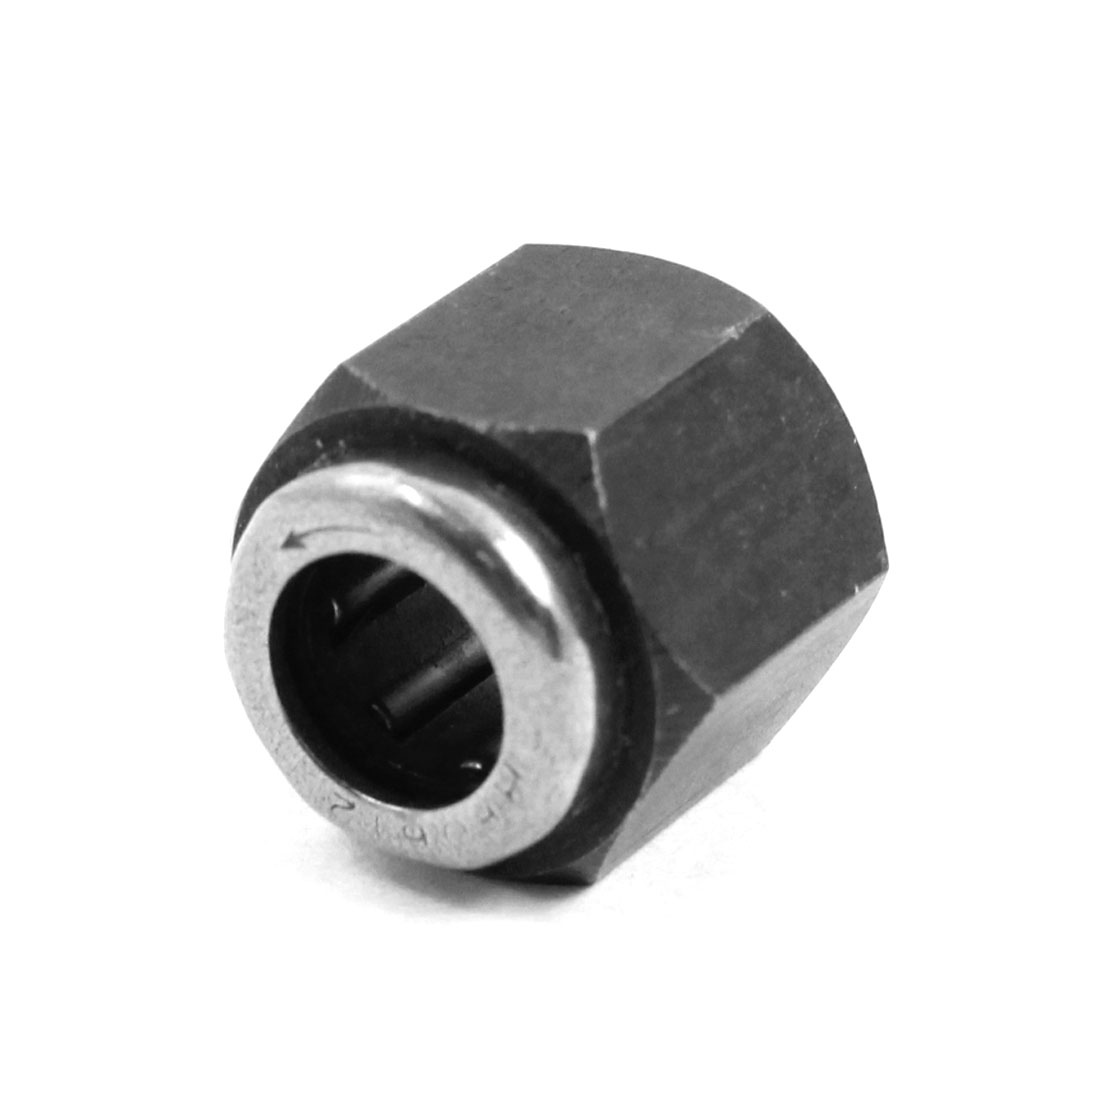 Black Metal Hex Nut One Way Bearing 12mm for 18 Nitro Engine RC 1/10 Car